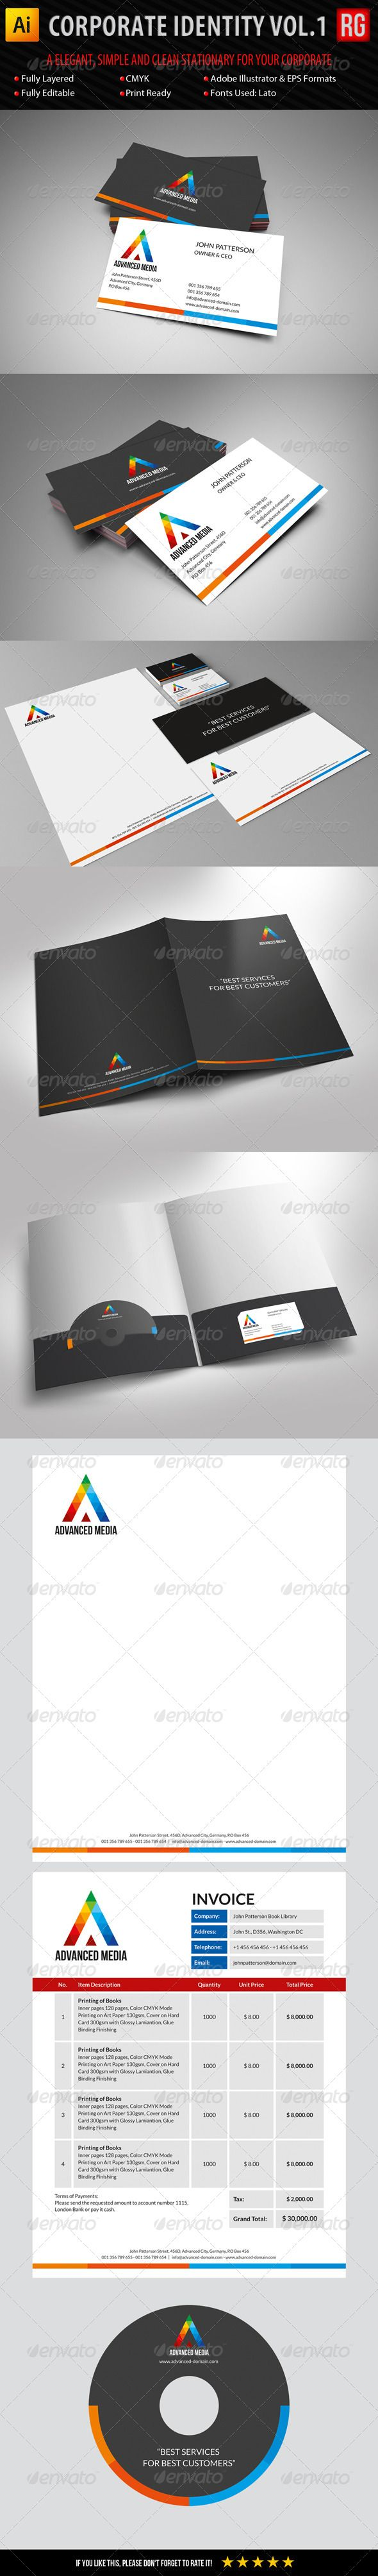 Lovely 10 Best Resume Tips Huge 10 Half Hexagon Template Regular 1099 Excel Template 12 Month Timeline Template Young 1st Place Certificate Template Soft2 Round Label Template 25  Best Ideas About Letter Size Envelope On Pinterest | Size Of ..